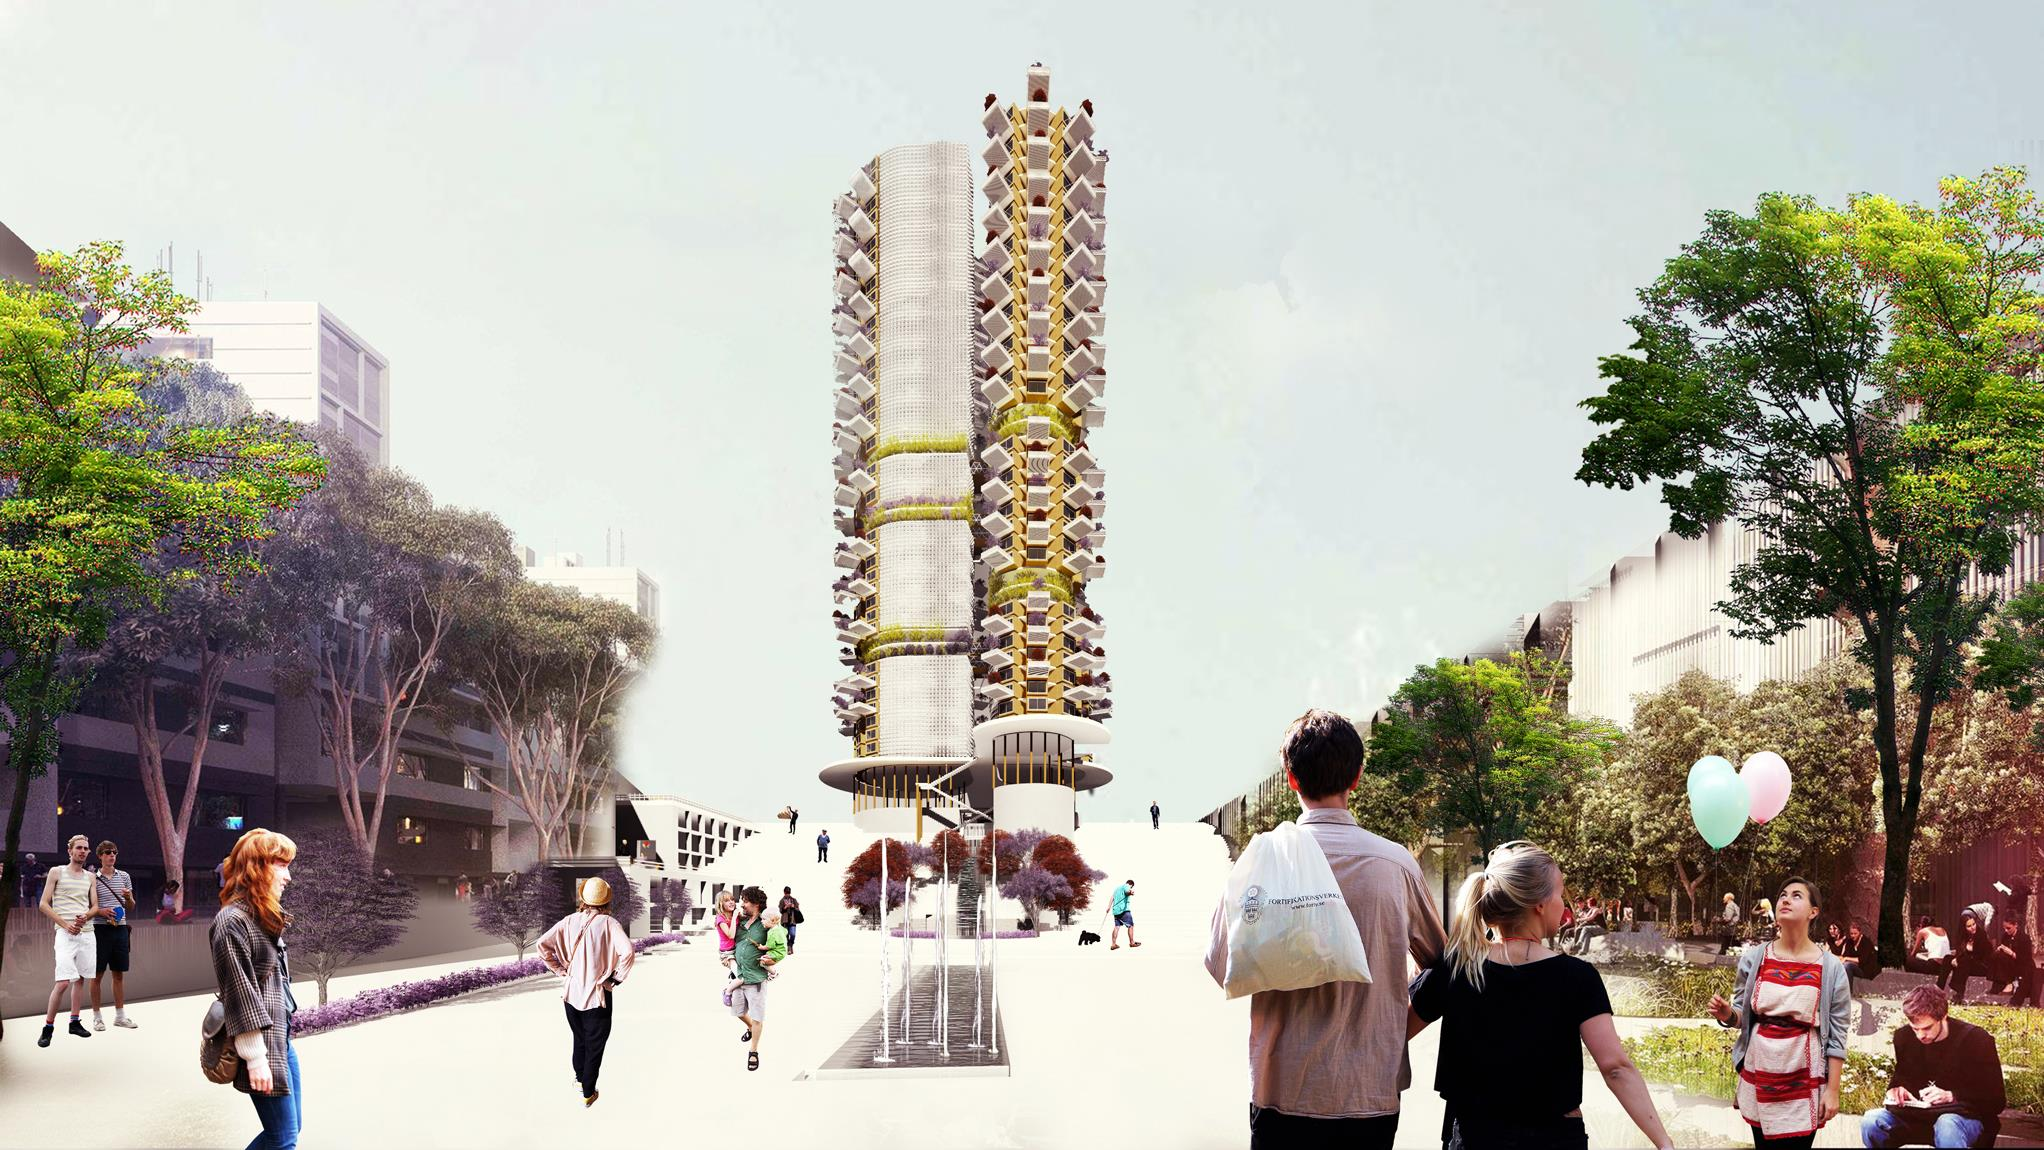 a skyscraper in Iran inspired by ancient Iranian adequact